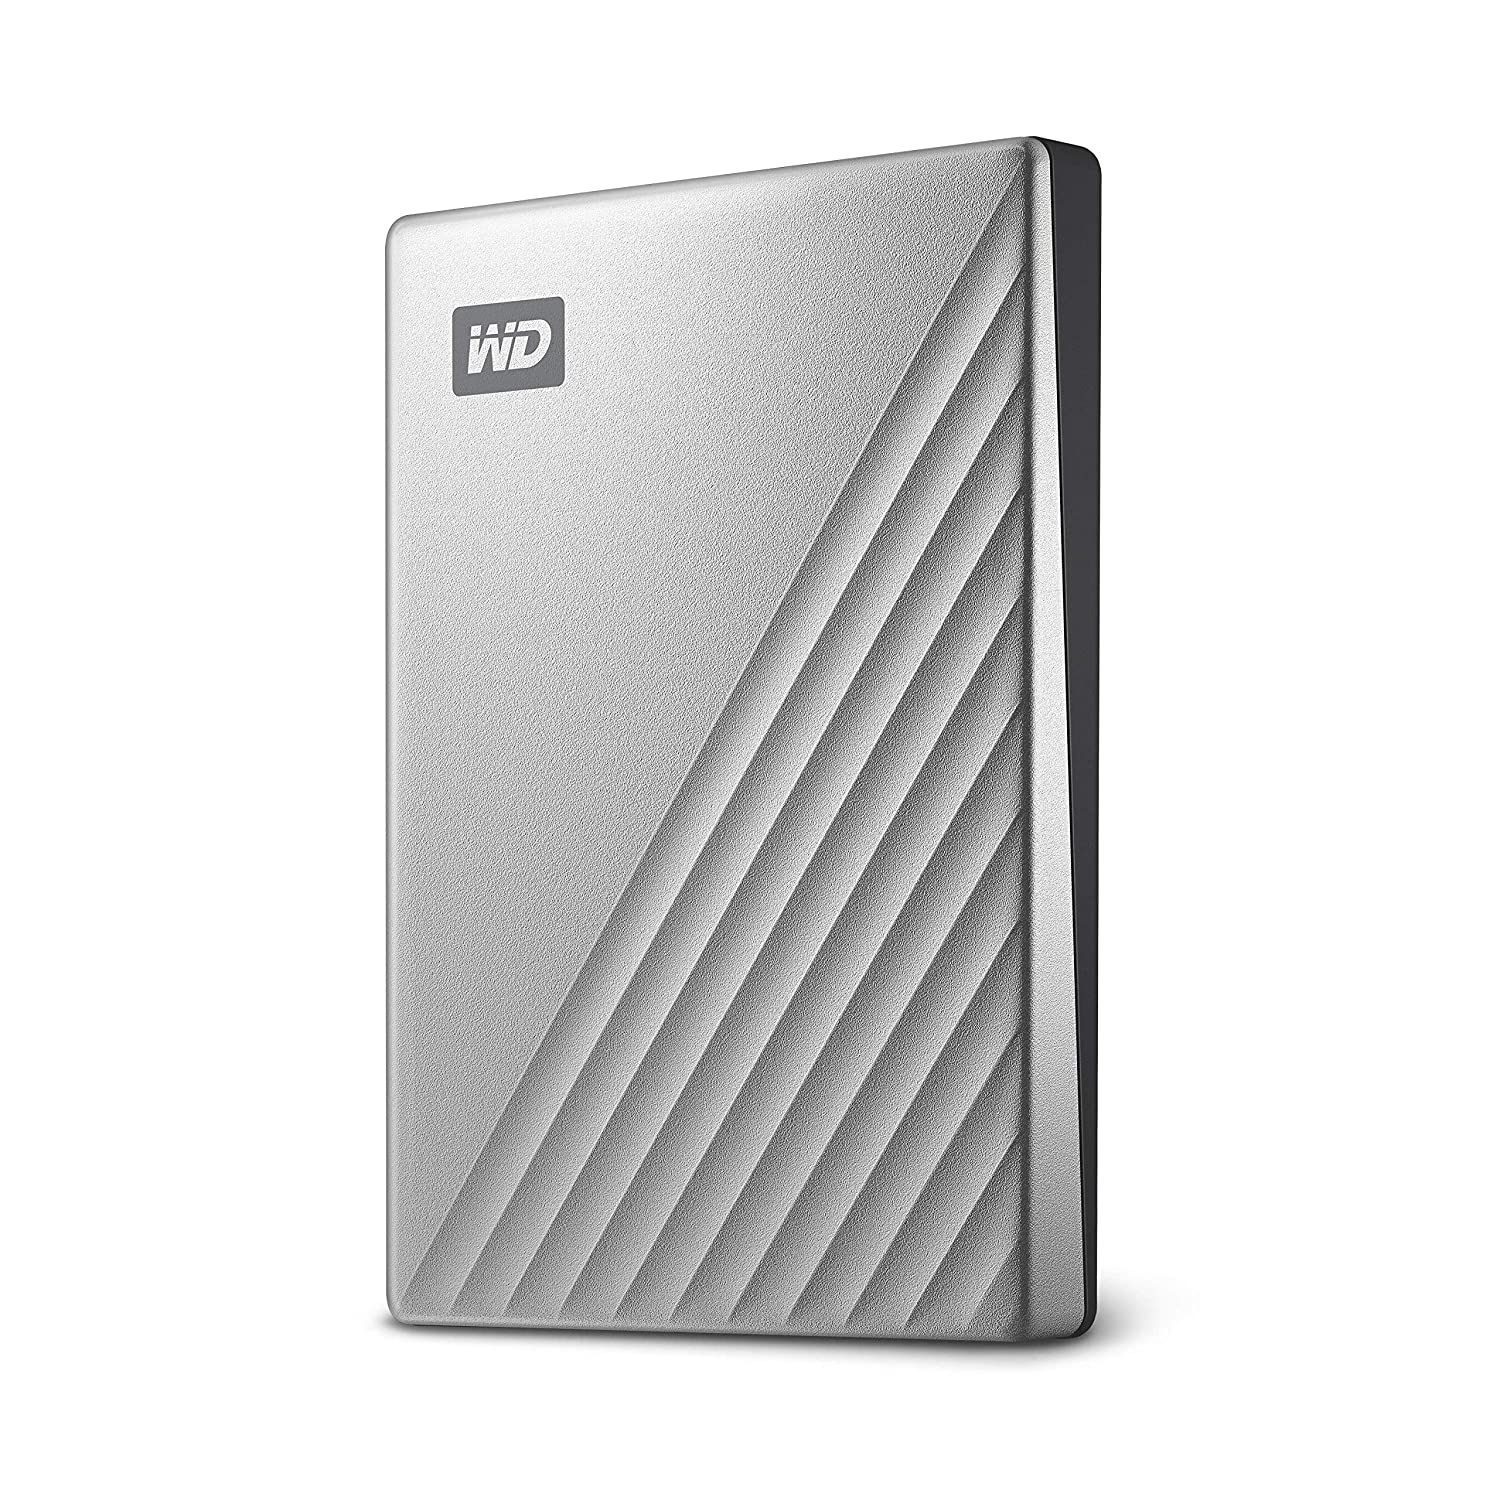 WD 2TB My Passport Ultra Silver Portable External Hard Drive, USB-C - WDBC3C0020BSL-WESN Western Digital